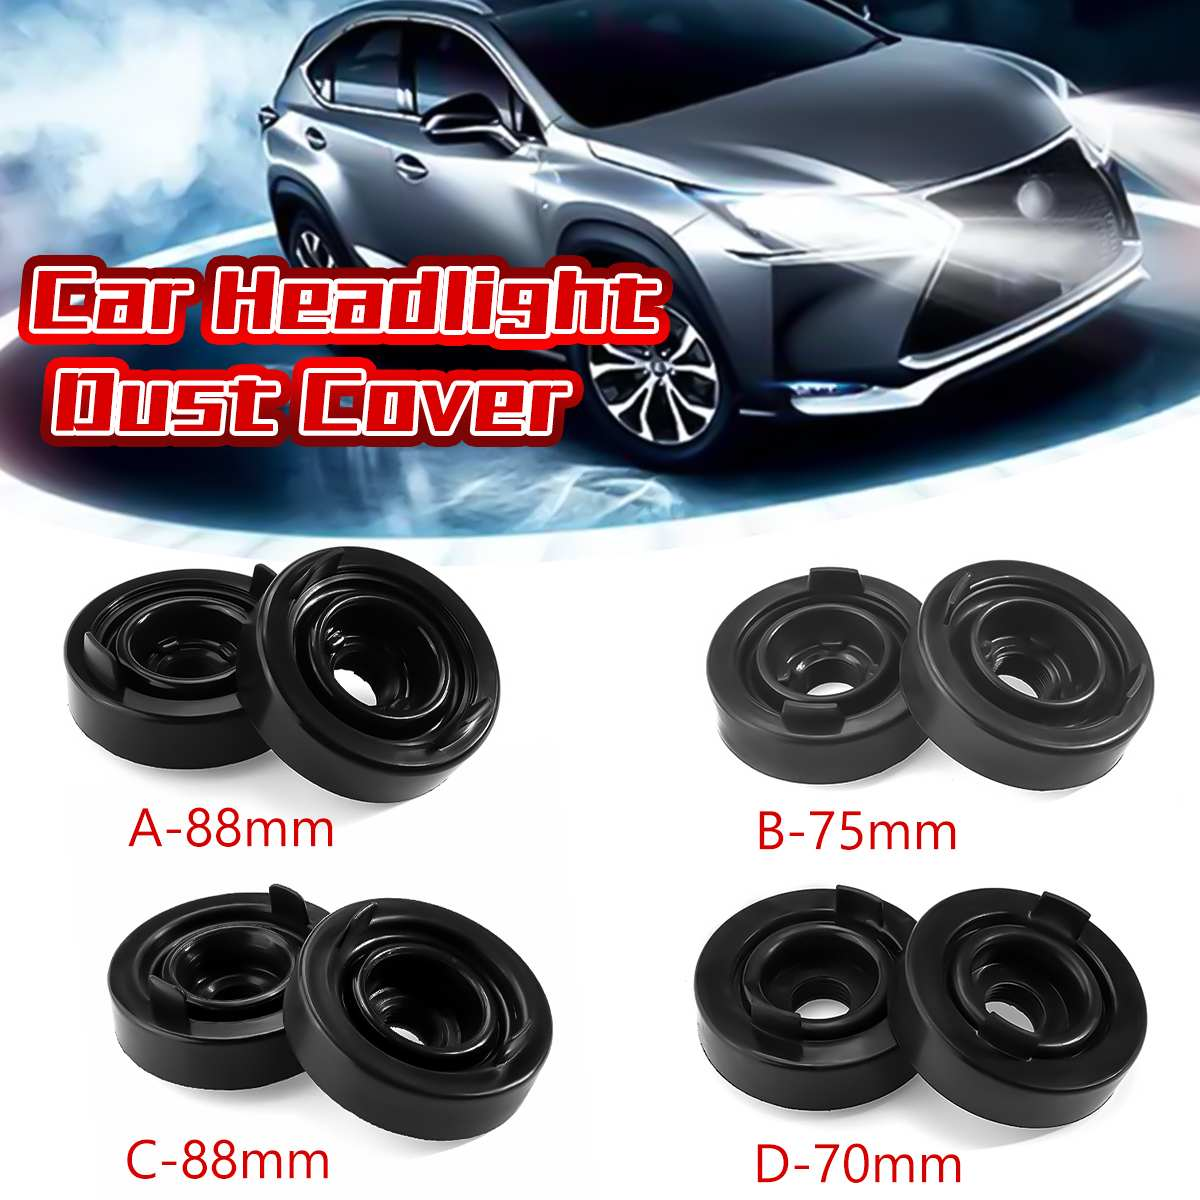 2x HID LED Headlight Headlamp Dust Cover Light Cap Dustproof 75mm